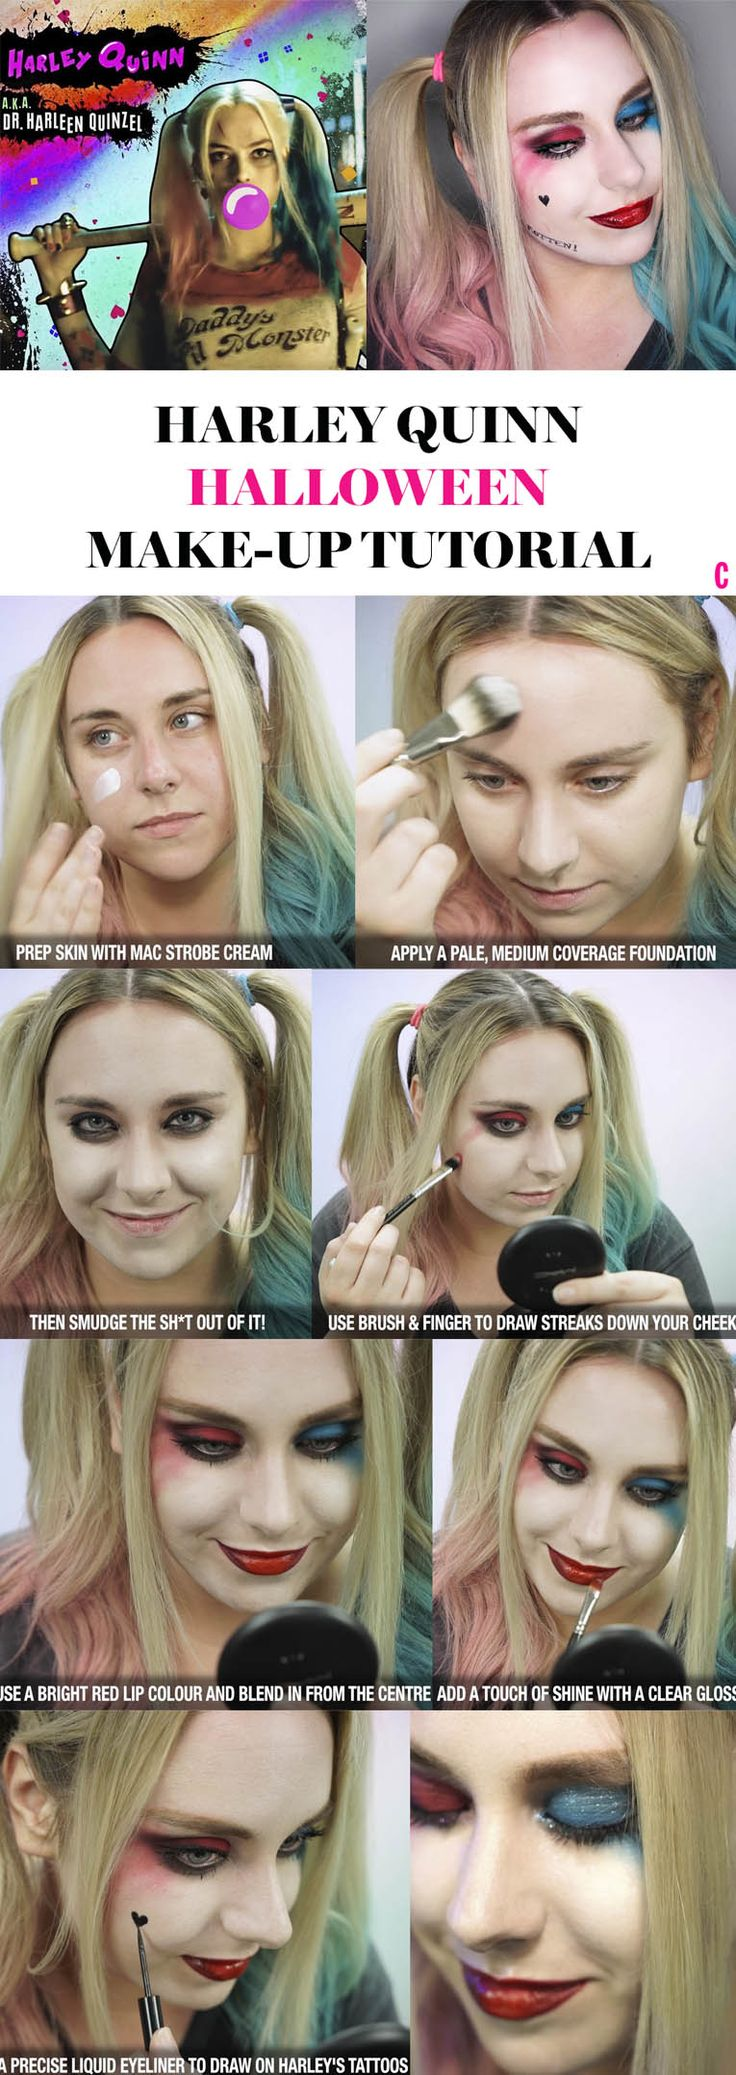 It's time to let your inner freak roam free, yup, we teamed up with the MAC Cosmetics' ah-mazing Senior Artist, Dominic Skinner, to show you how to create the ultimate Harley Quinn makeup look. Whether you want to swot up in time for Halloween, or you just fancy getting your Harley on at home (hey, we're not judging). Click to watch the video tutorial below, and you'll have it nailed in no time.